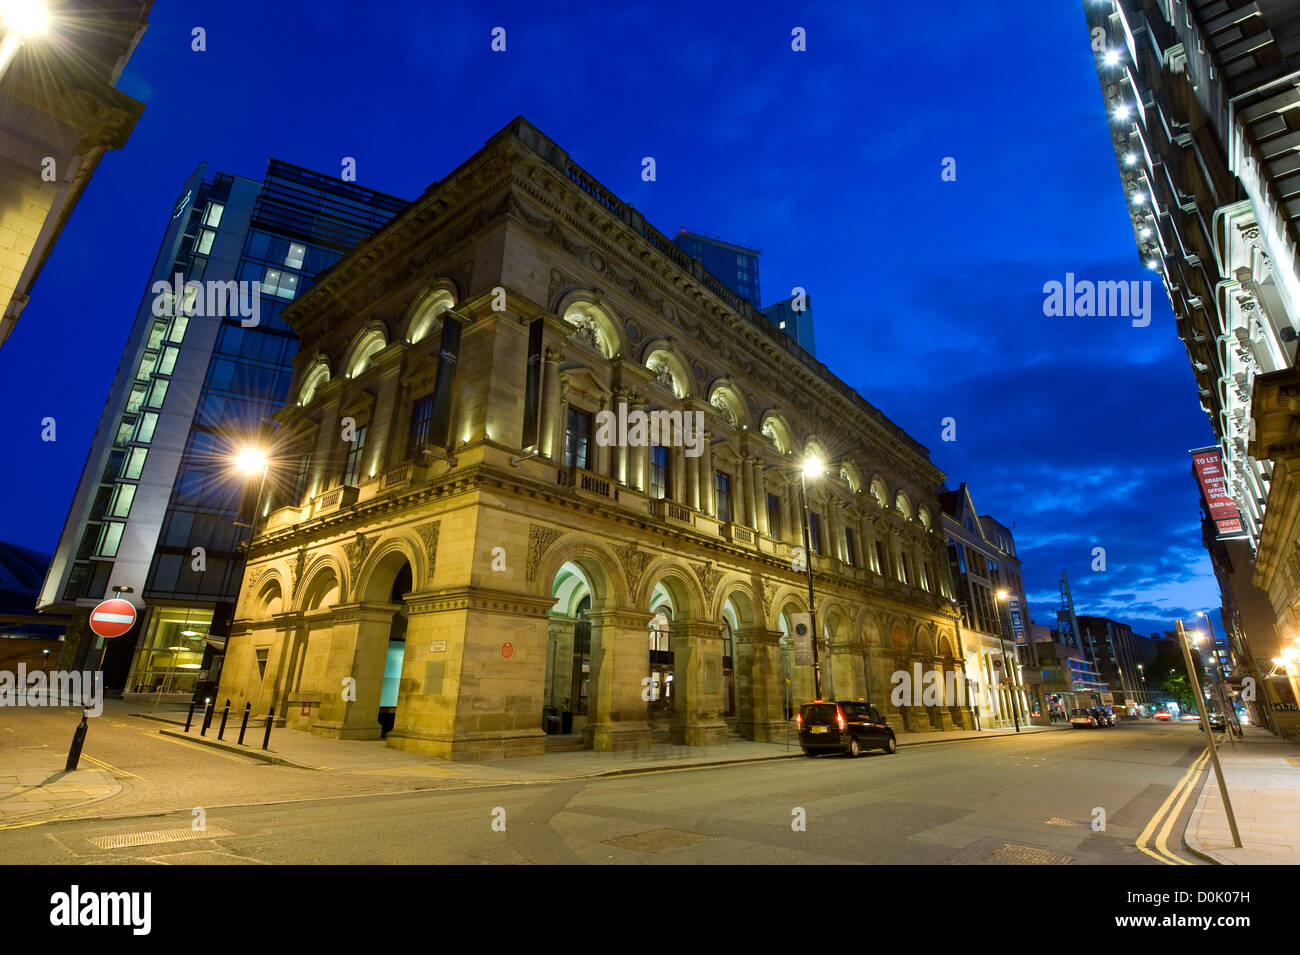 A view of the Free Trade Hall in Manchester. - Stock Image